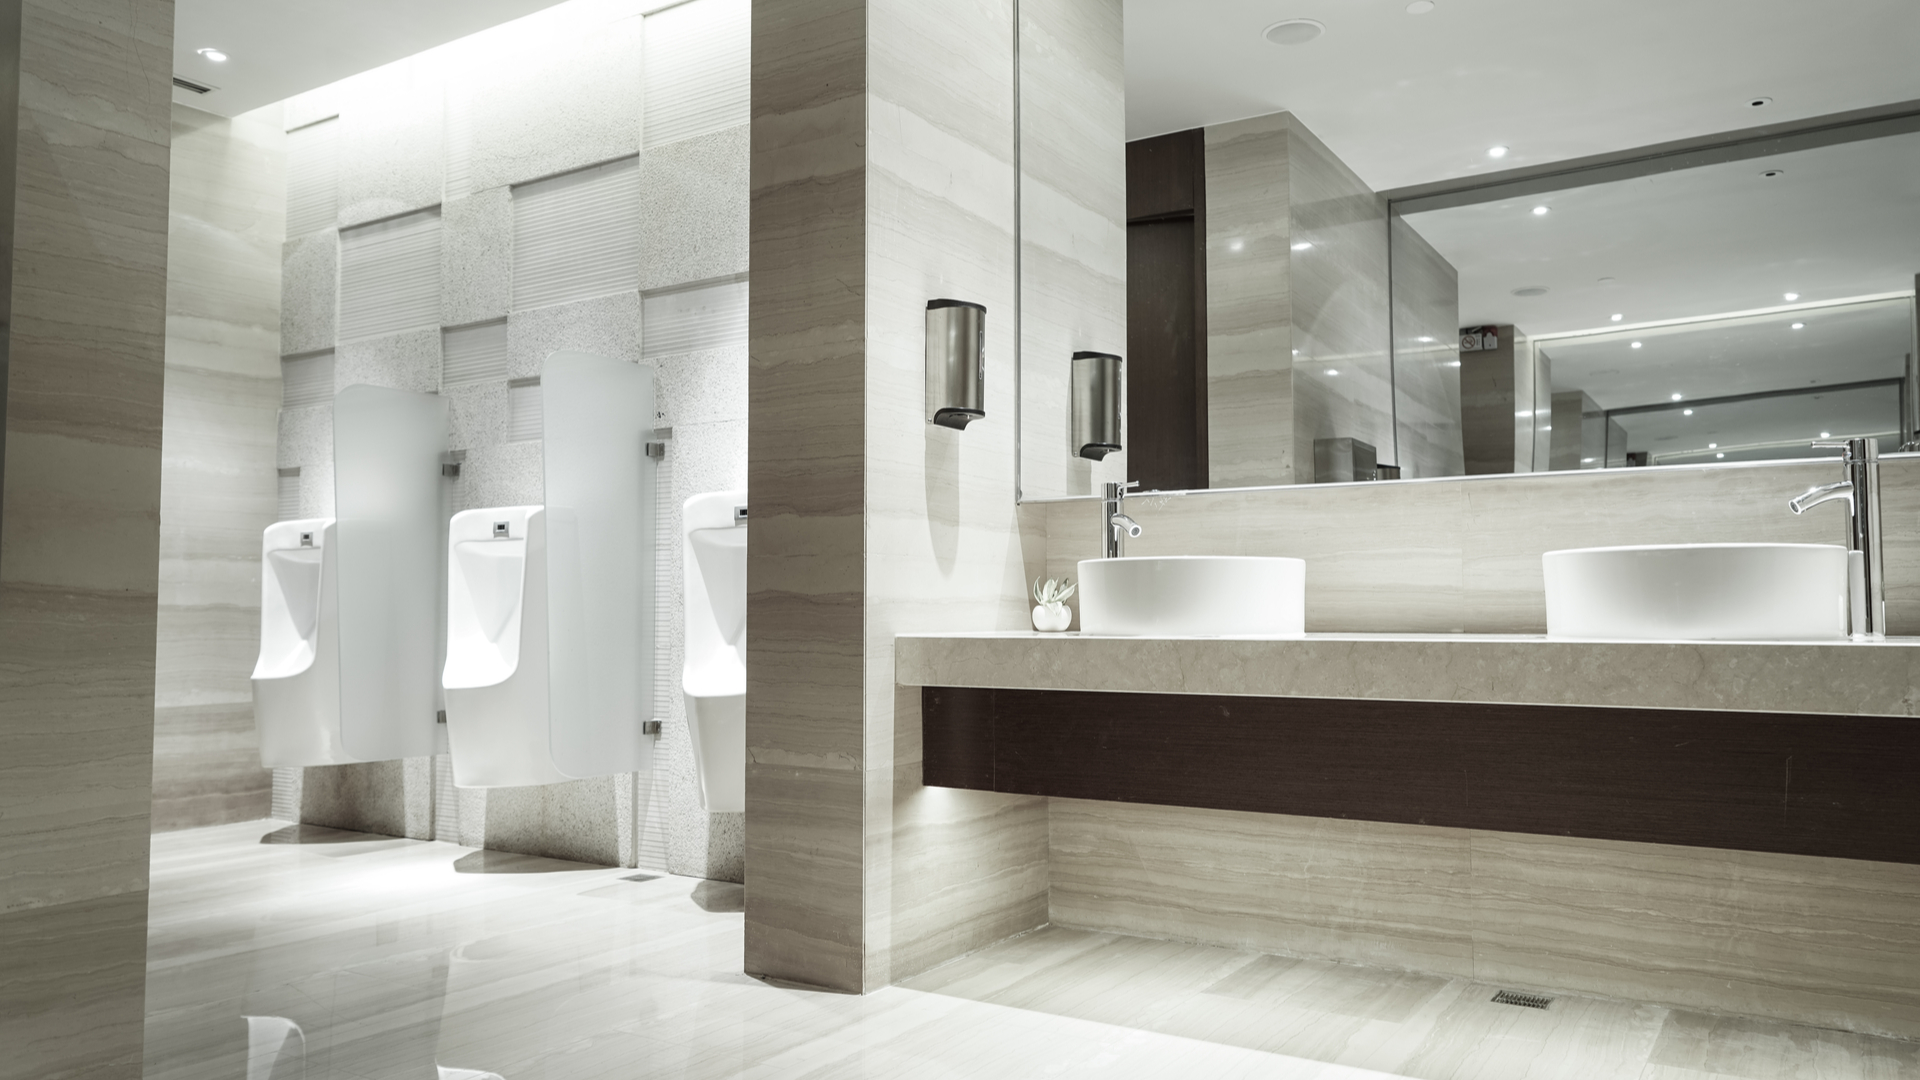 3 Ways To Find A Bathroom While Traveling Smartertravel